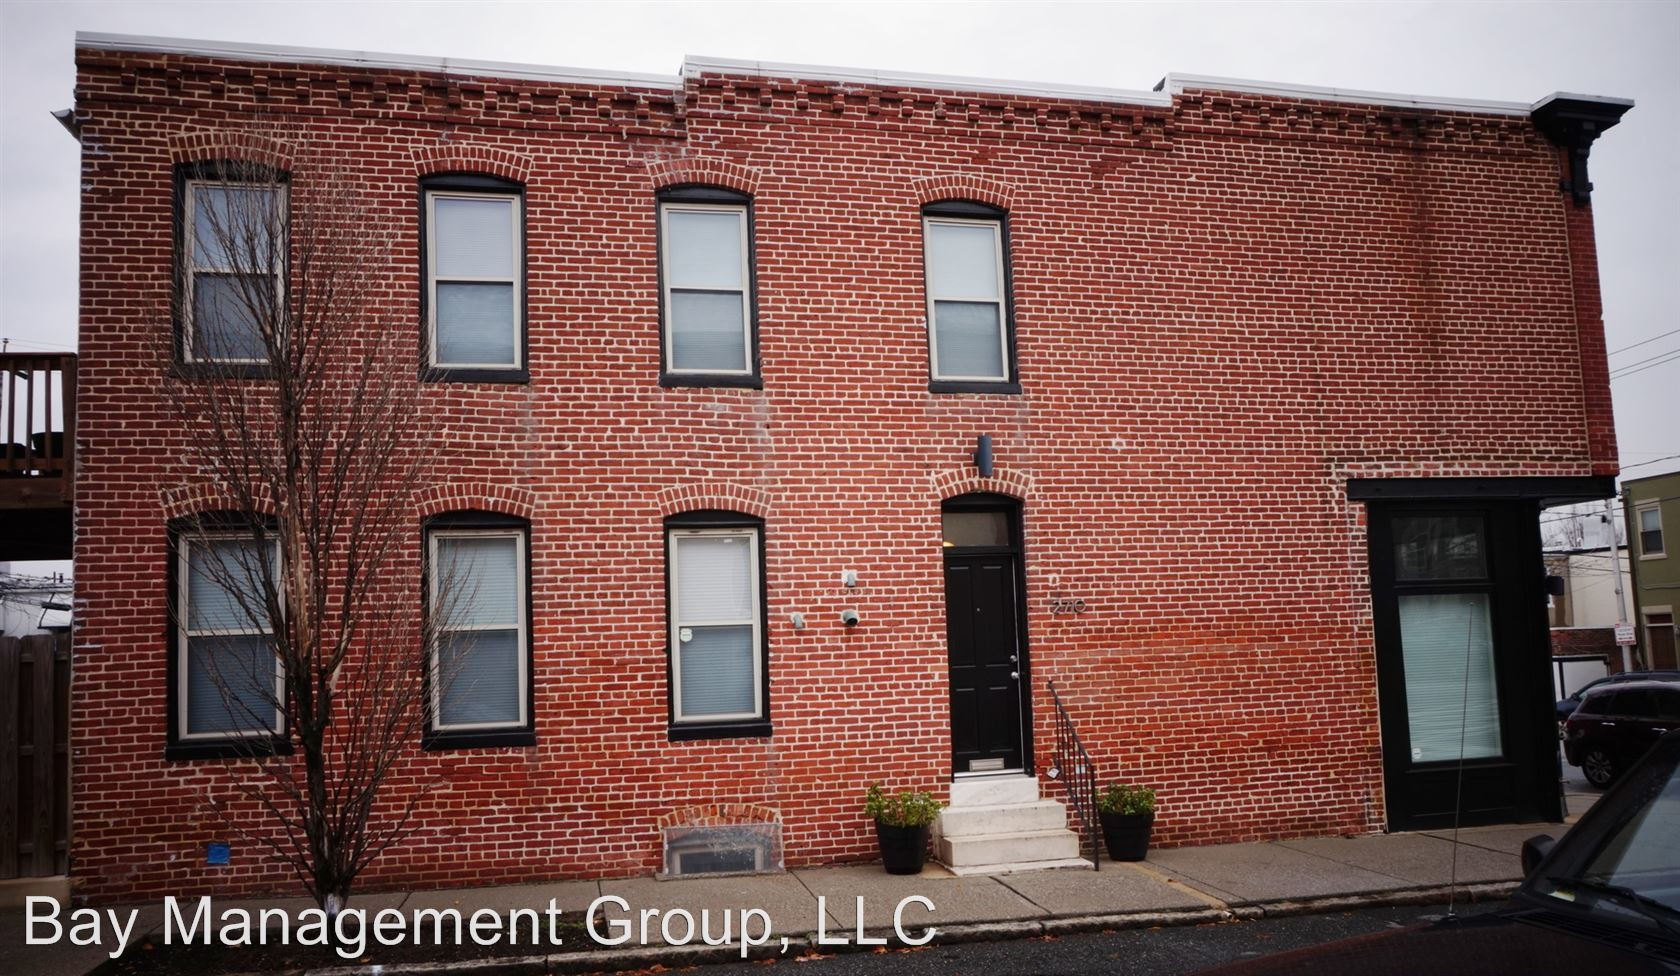 3 bedroom apartments for rent in buffalo ny 2710 e fairmount ave baltimore md 21224 3 bedroom house 21209